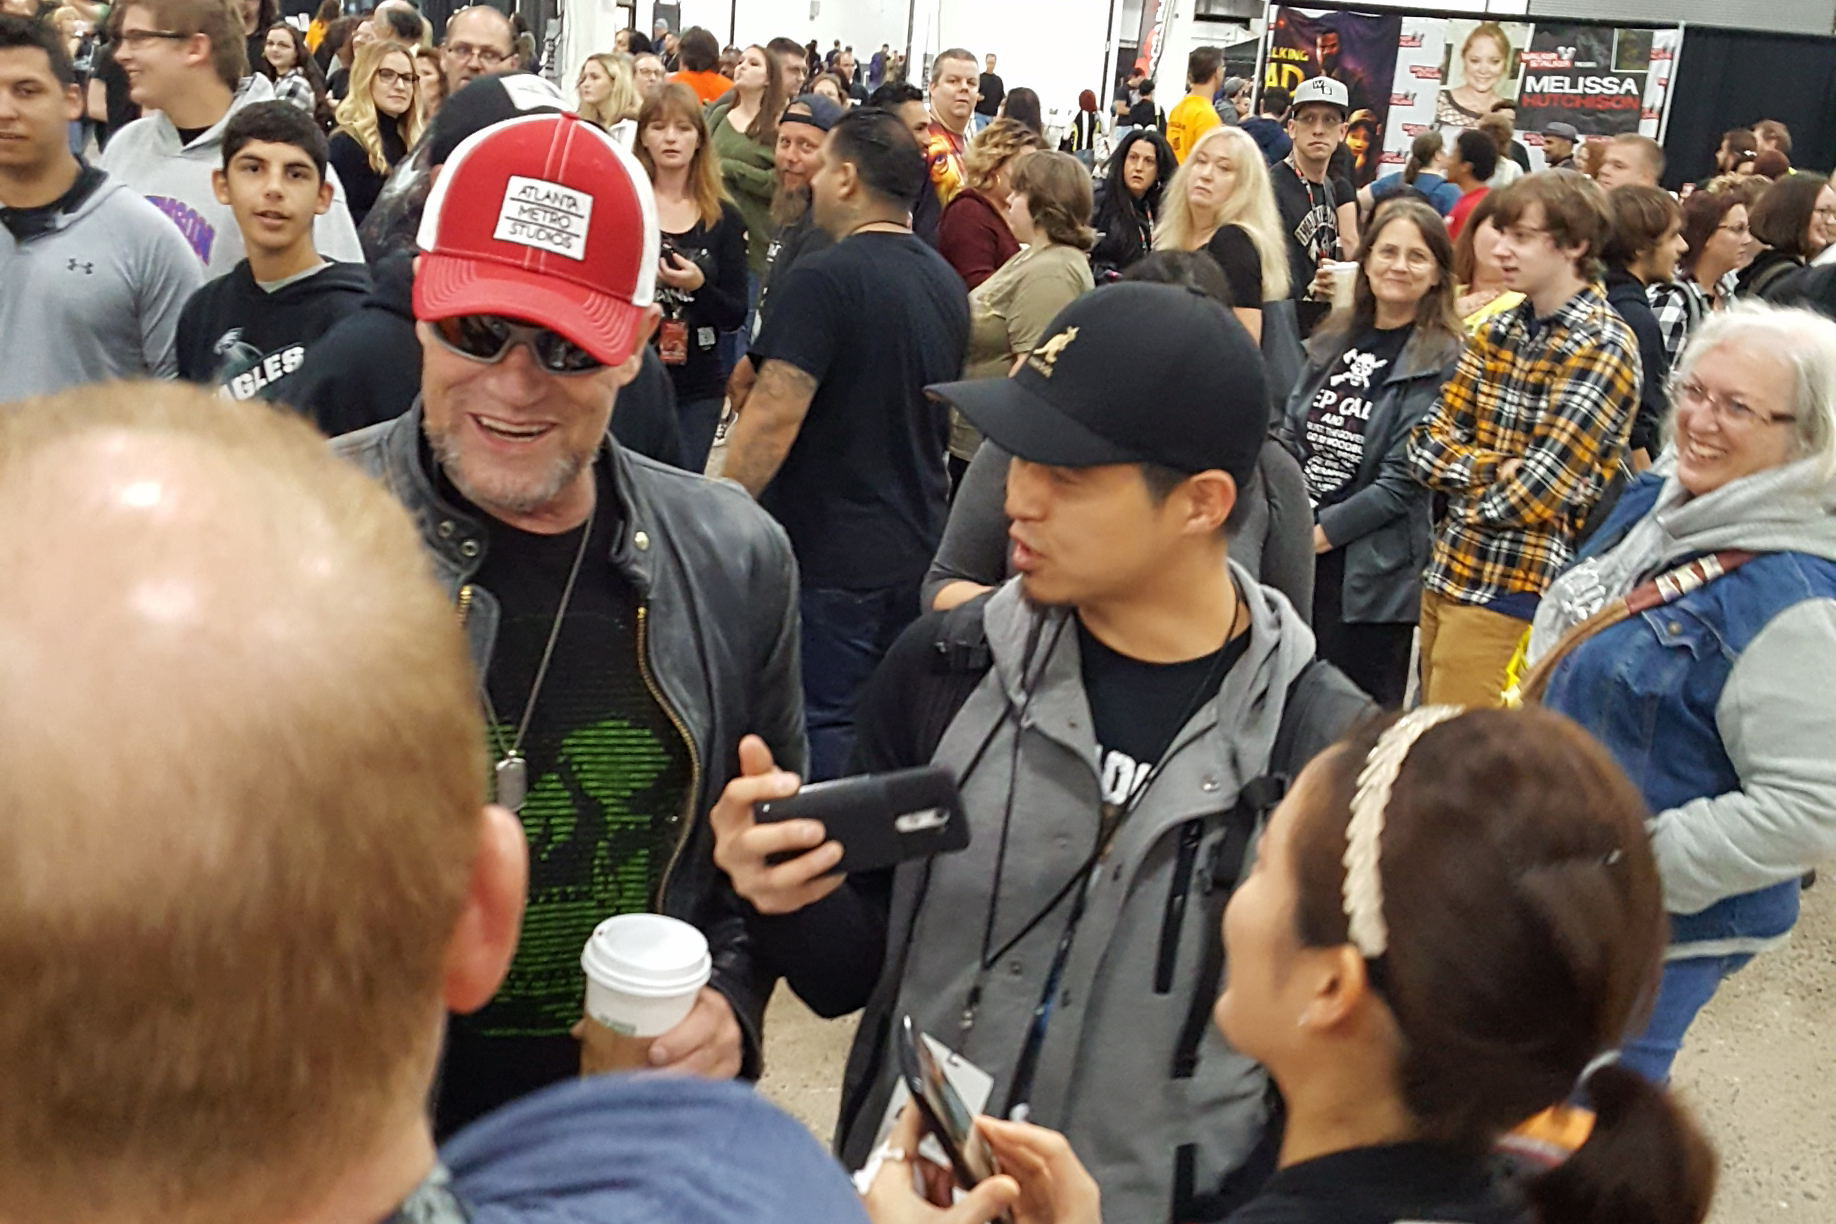 Michael Rooker Walker Stalker Con The Walking Dead Merle Dixon Guardians of the Galaxy Yondu Udonta Fans